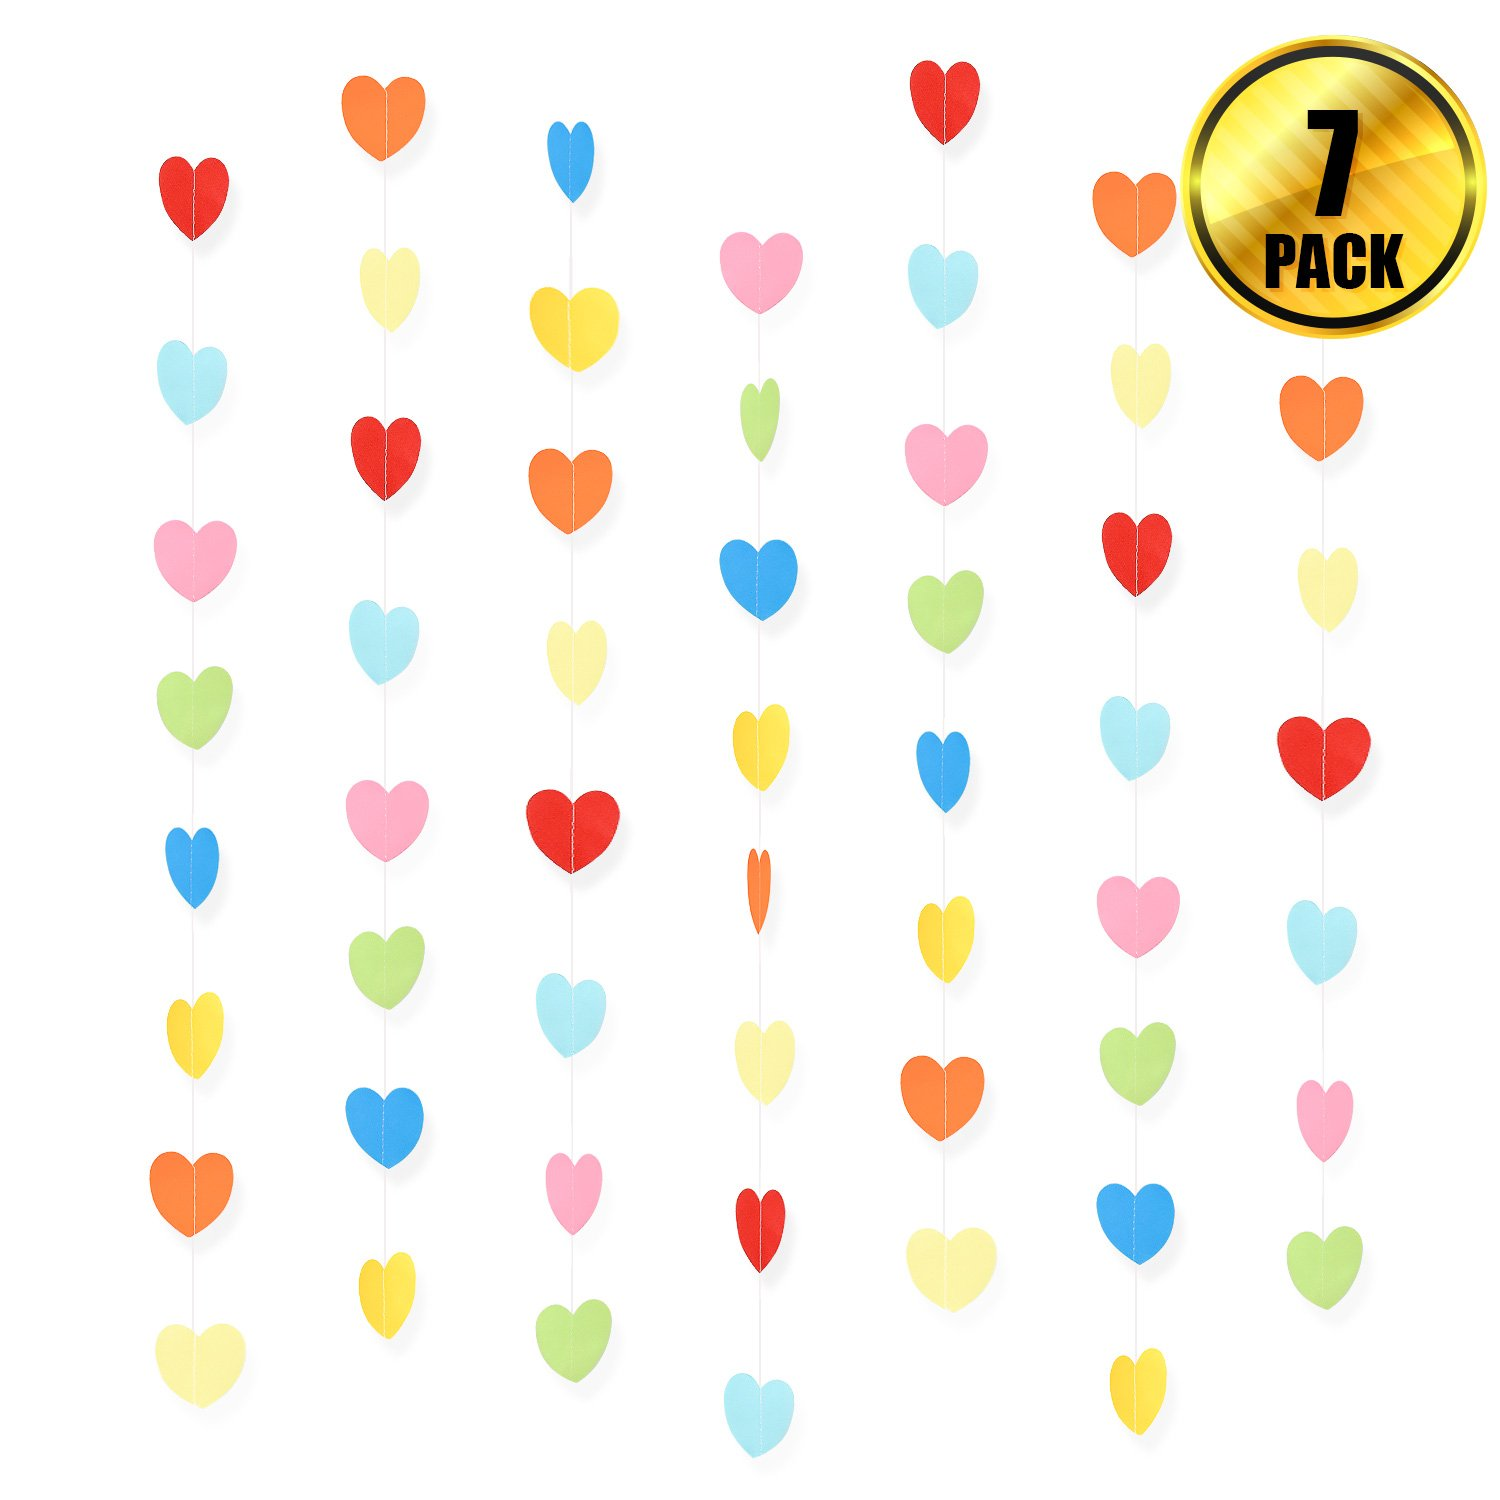 WXJ13 7 Pack Rainbow Color Birthday Paper Heart Decorations Heart Shape Garland Decorations, 41.3 Feet/13.7 Yards, Valentine's Day Wedding Party Decoration Supplies